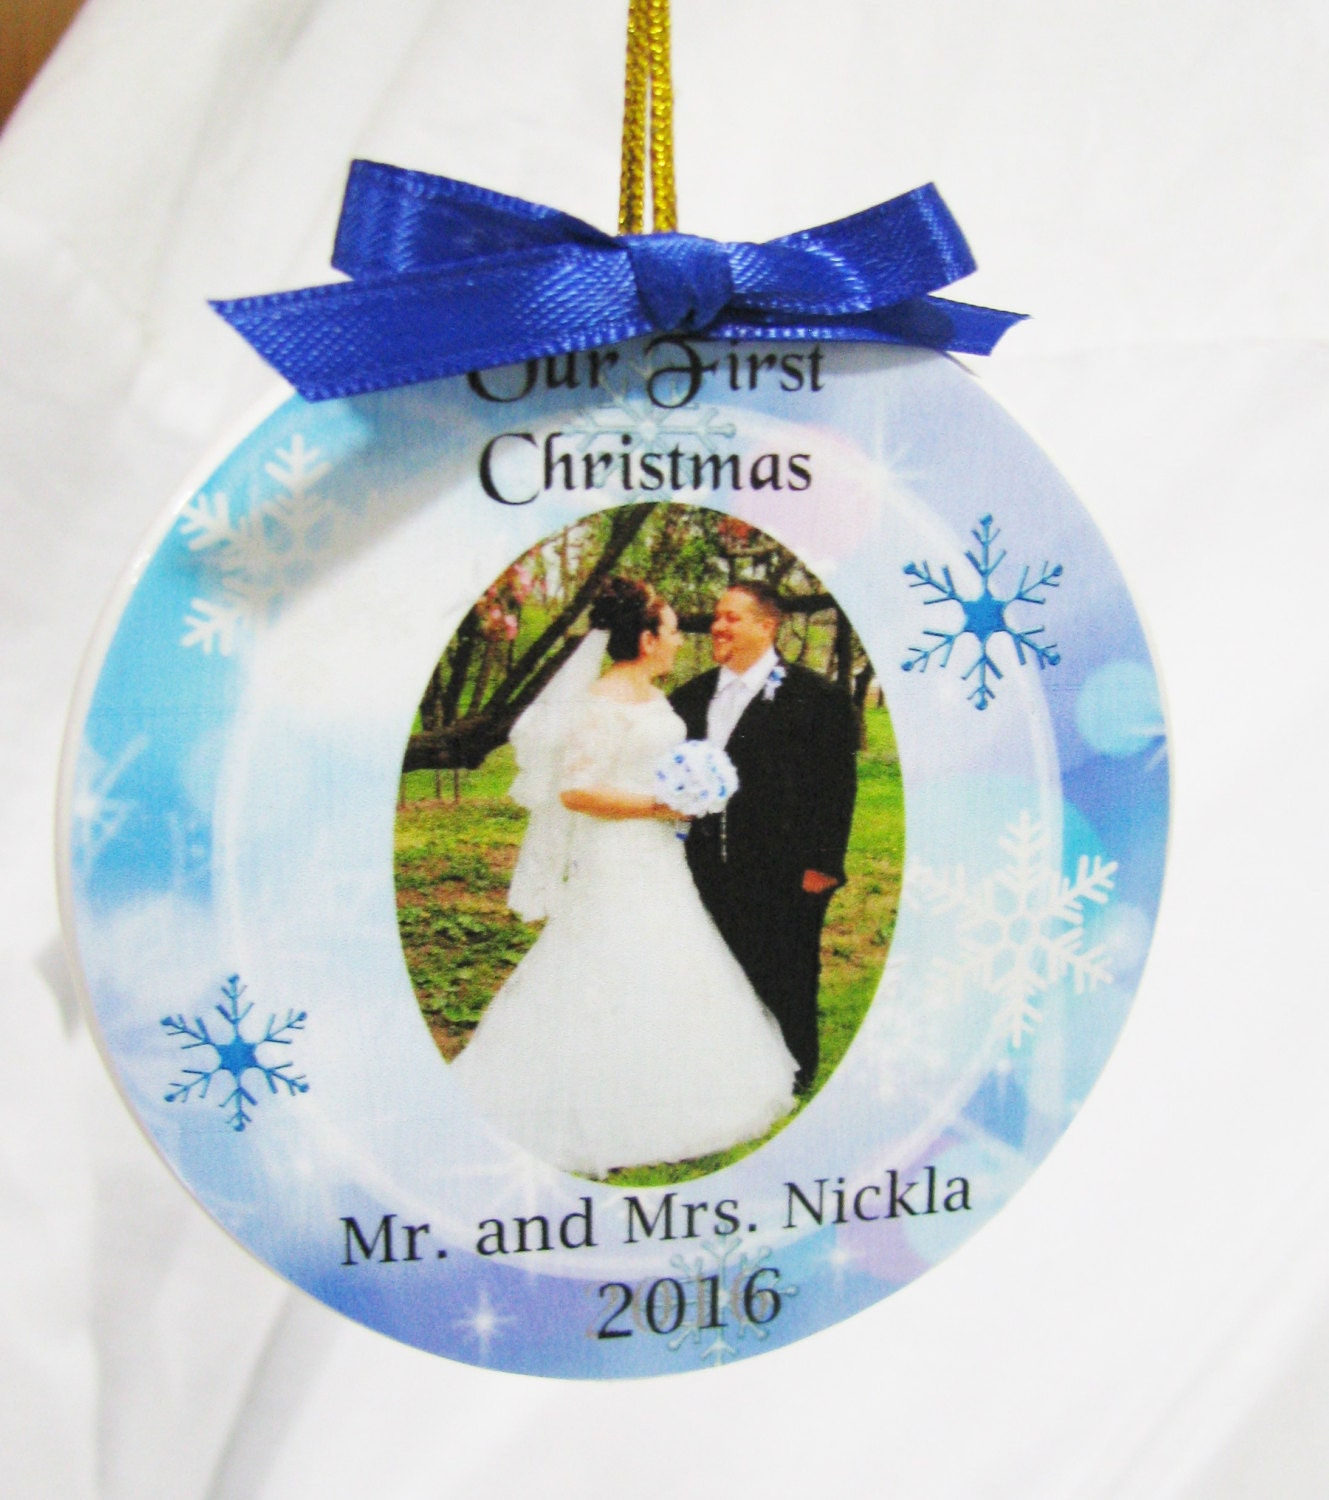 Newlywed ornament - First Christmas Married Ornament Christmas Ornament Our First Christmas First Christmas Wedding Ornament Newlywed Ornament